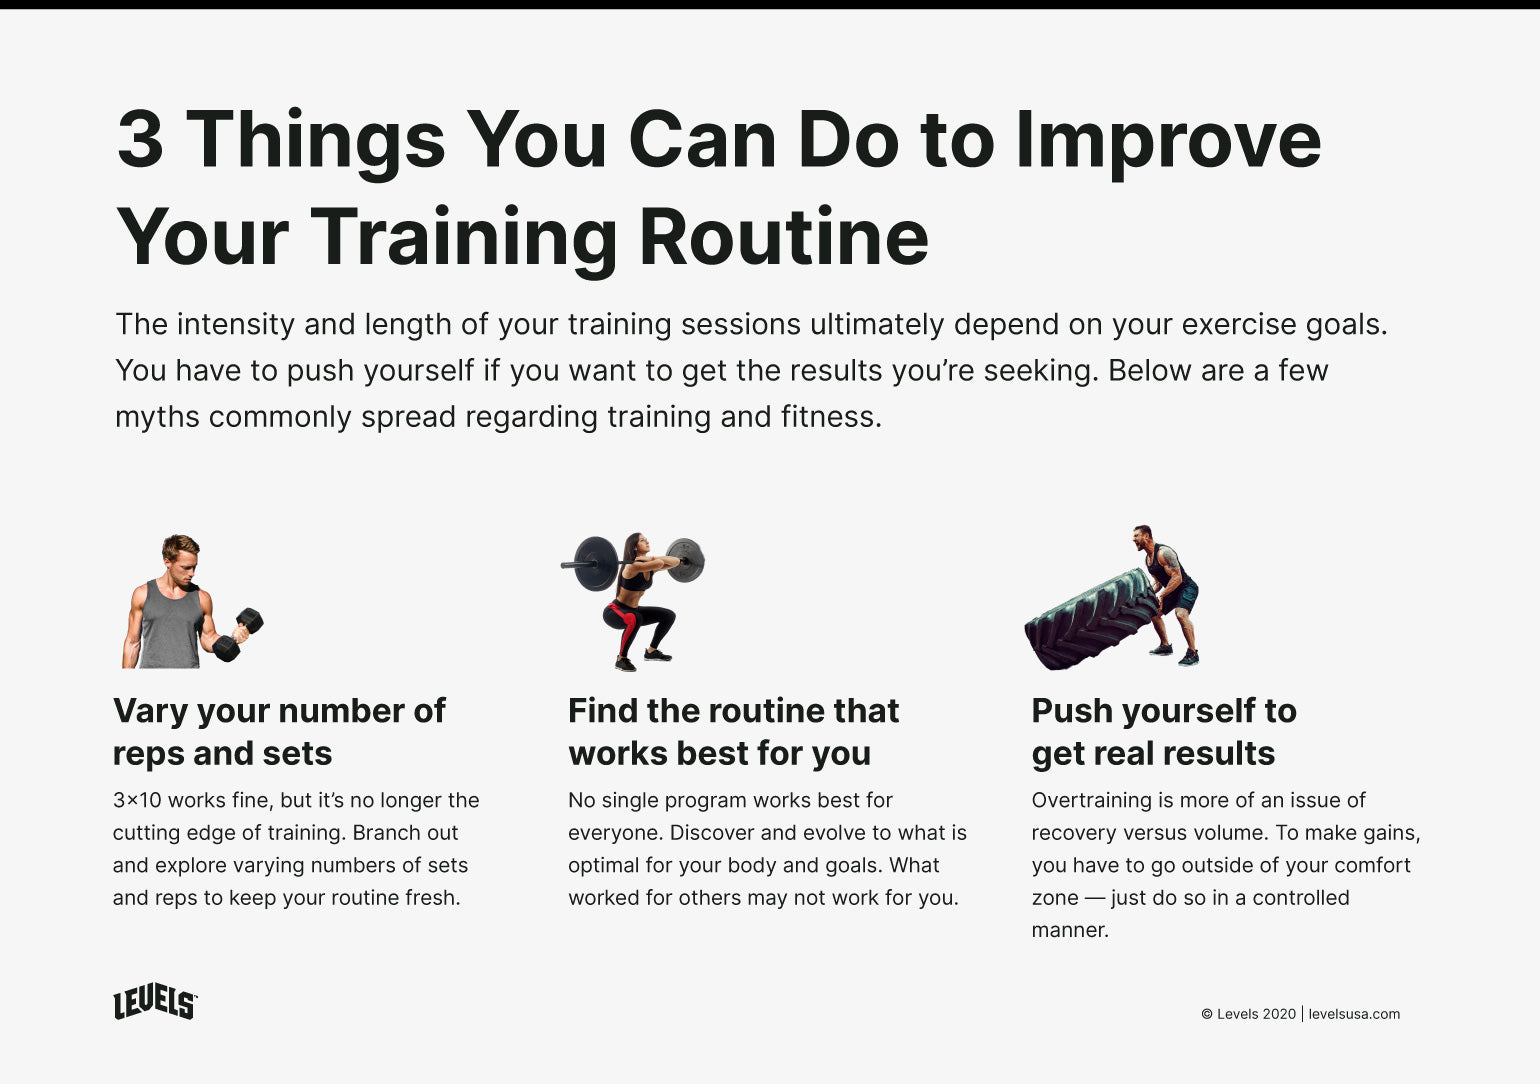 3 Training Volume Myths Busted - Infographic